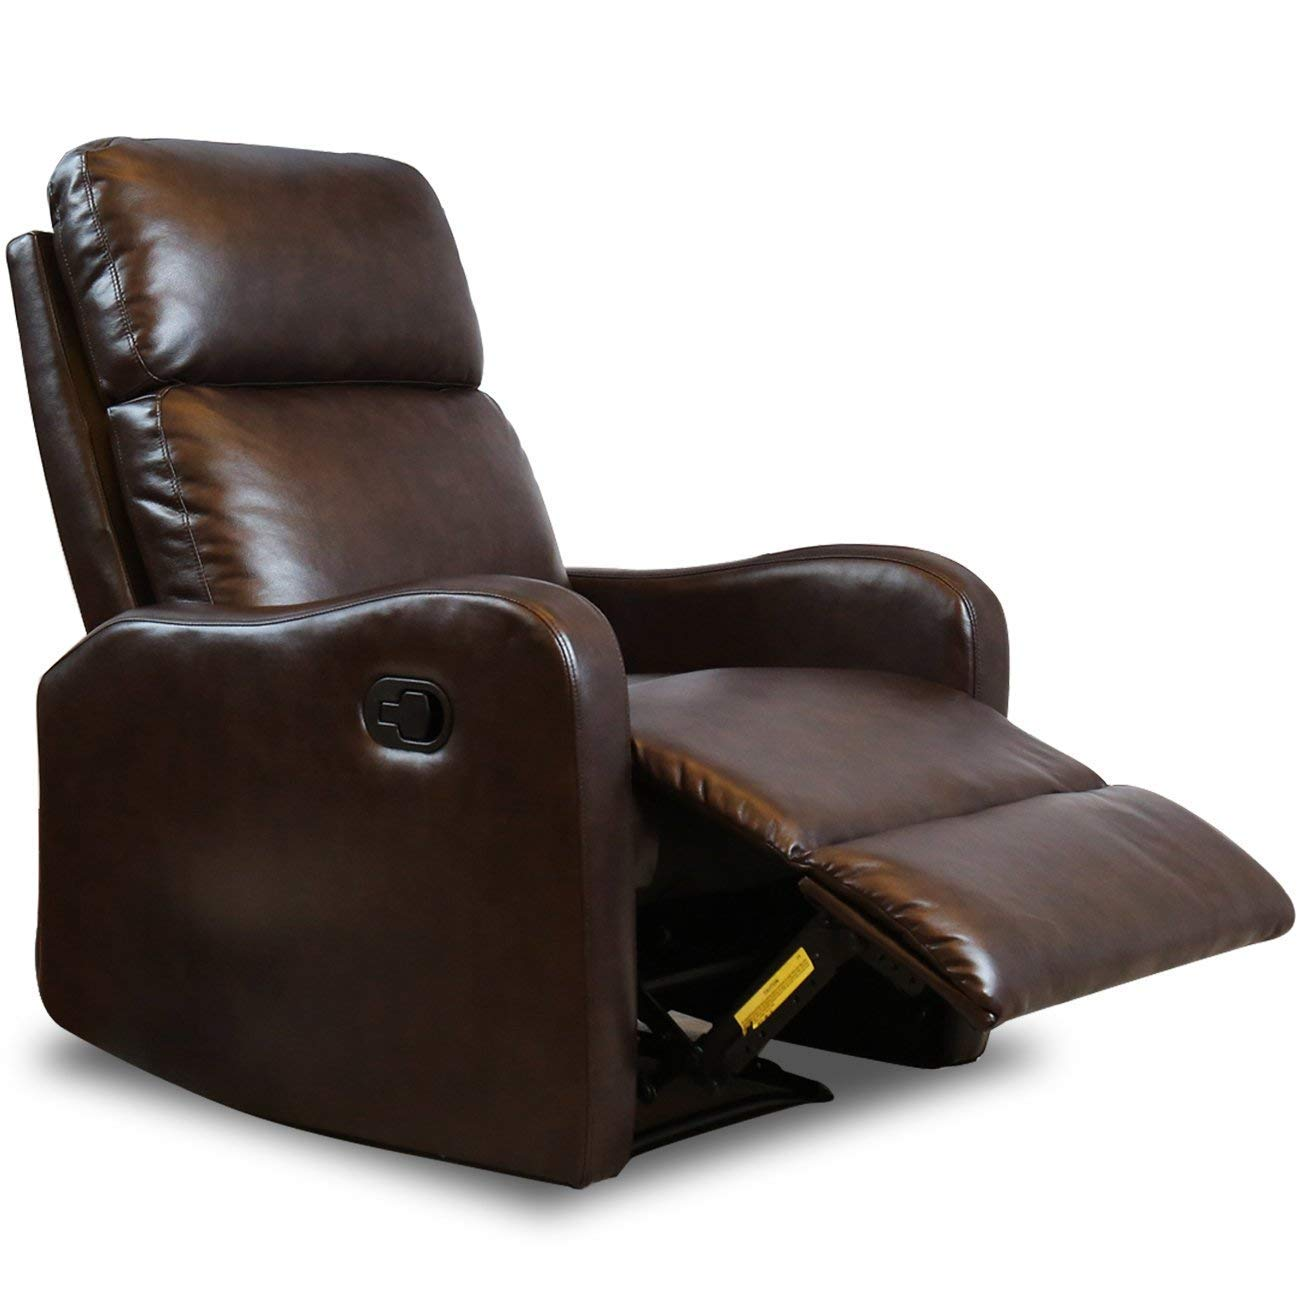 Magnificent Bonzy Recliner Chair Contemporary Leather Recliner For Modern Living Room Chocolate Onthecornerstone Fun Painted Chair Ideas Images Onthecornerstoneorg